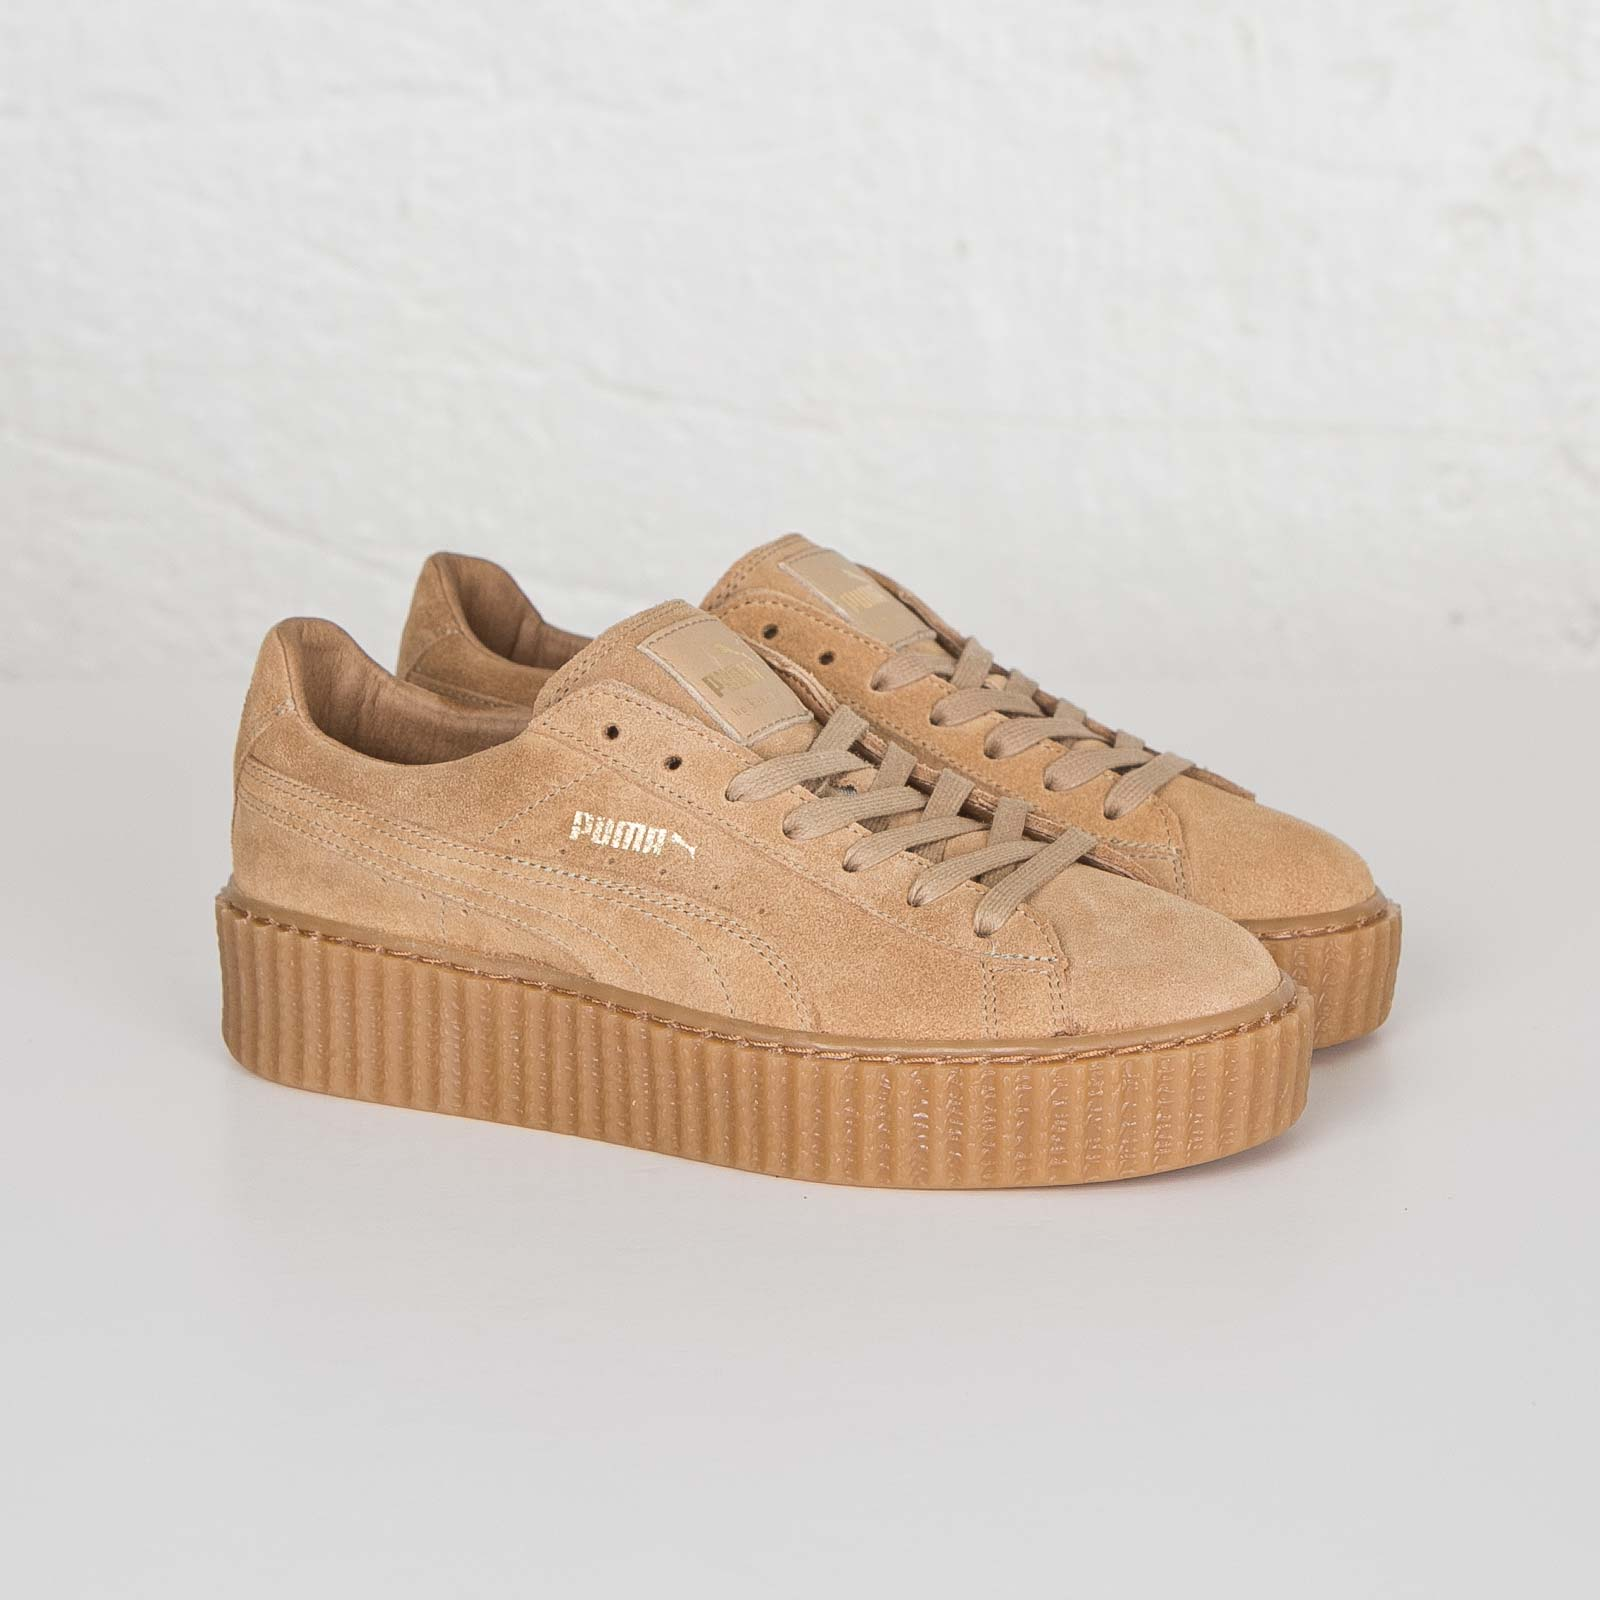 new arrival 82bcd 0e43e Puma Suede Creepers - 361005-03 - Sneakersnstuff | sneakers ...